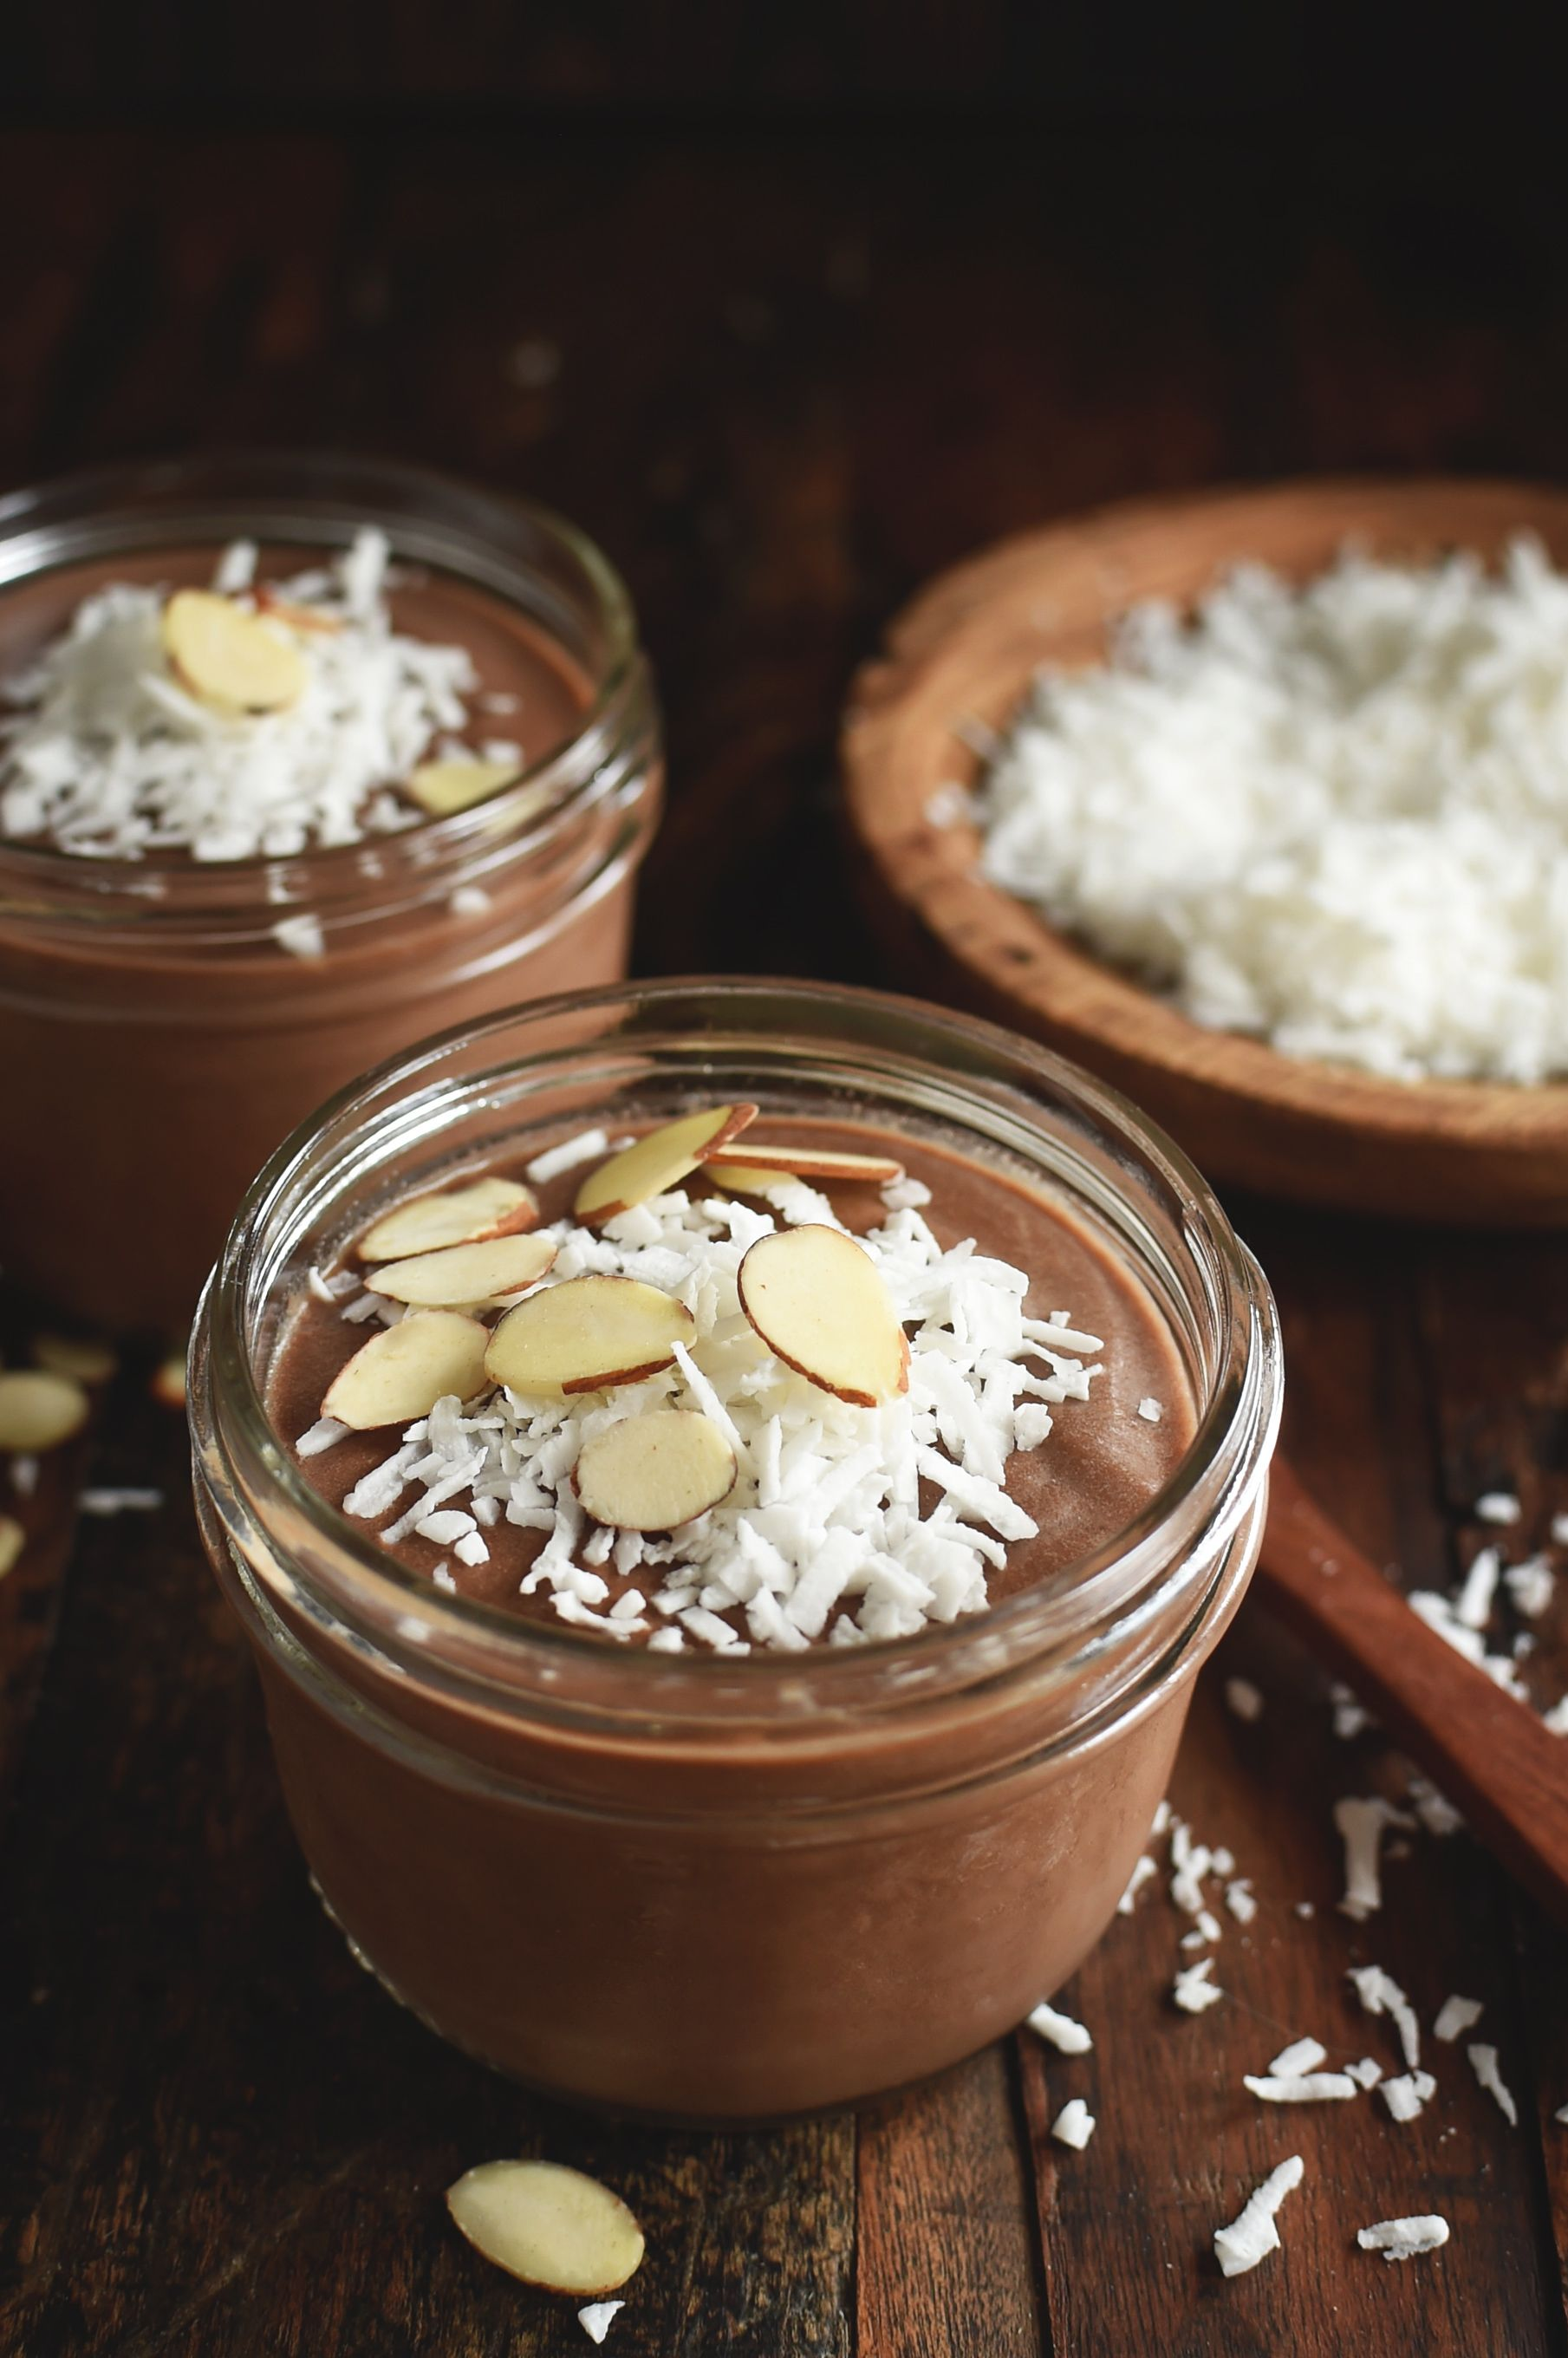 Chocolate Almond Avocado Pudding Recipe Avocado Pudding Dairy